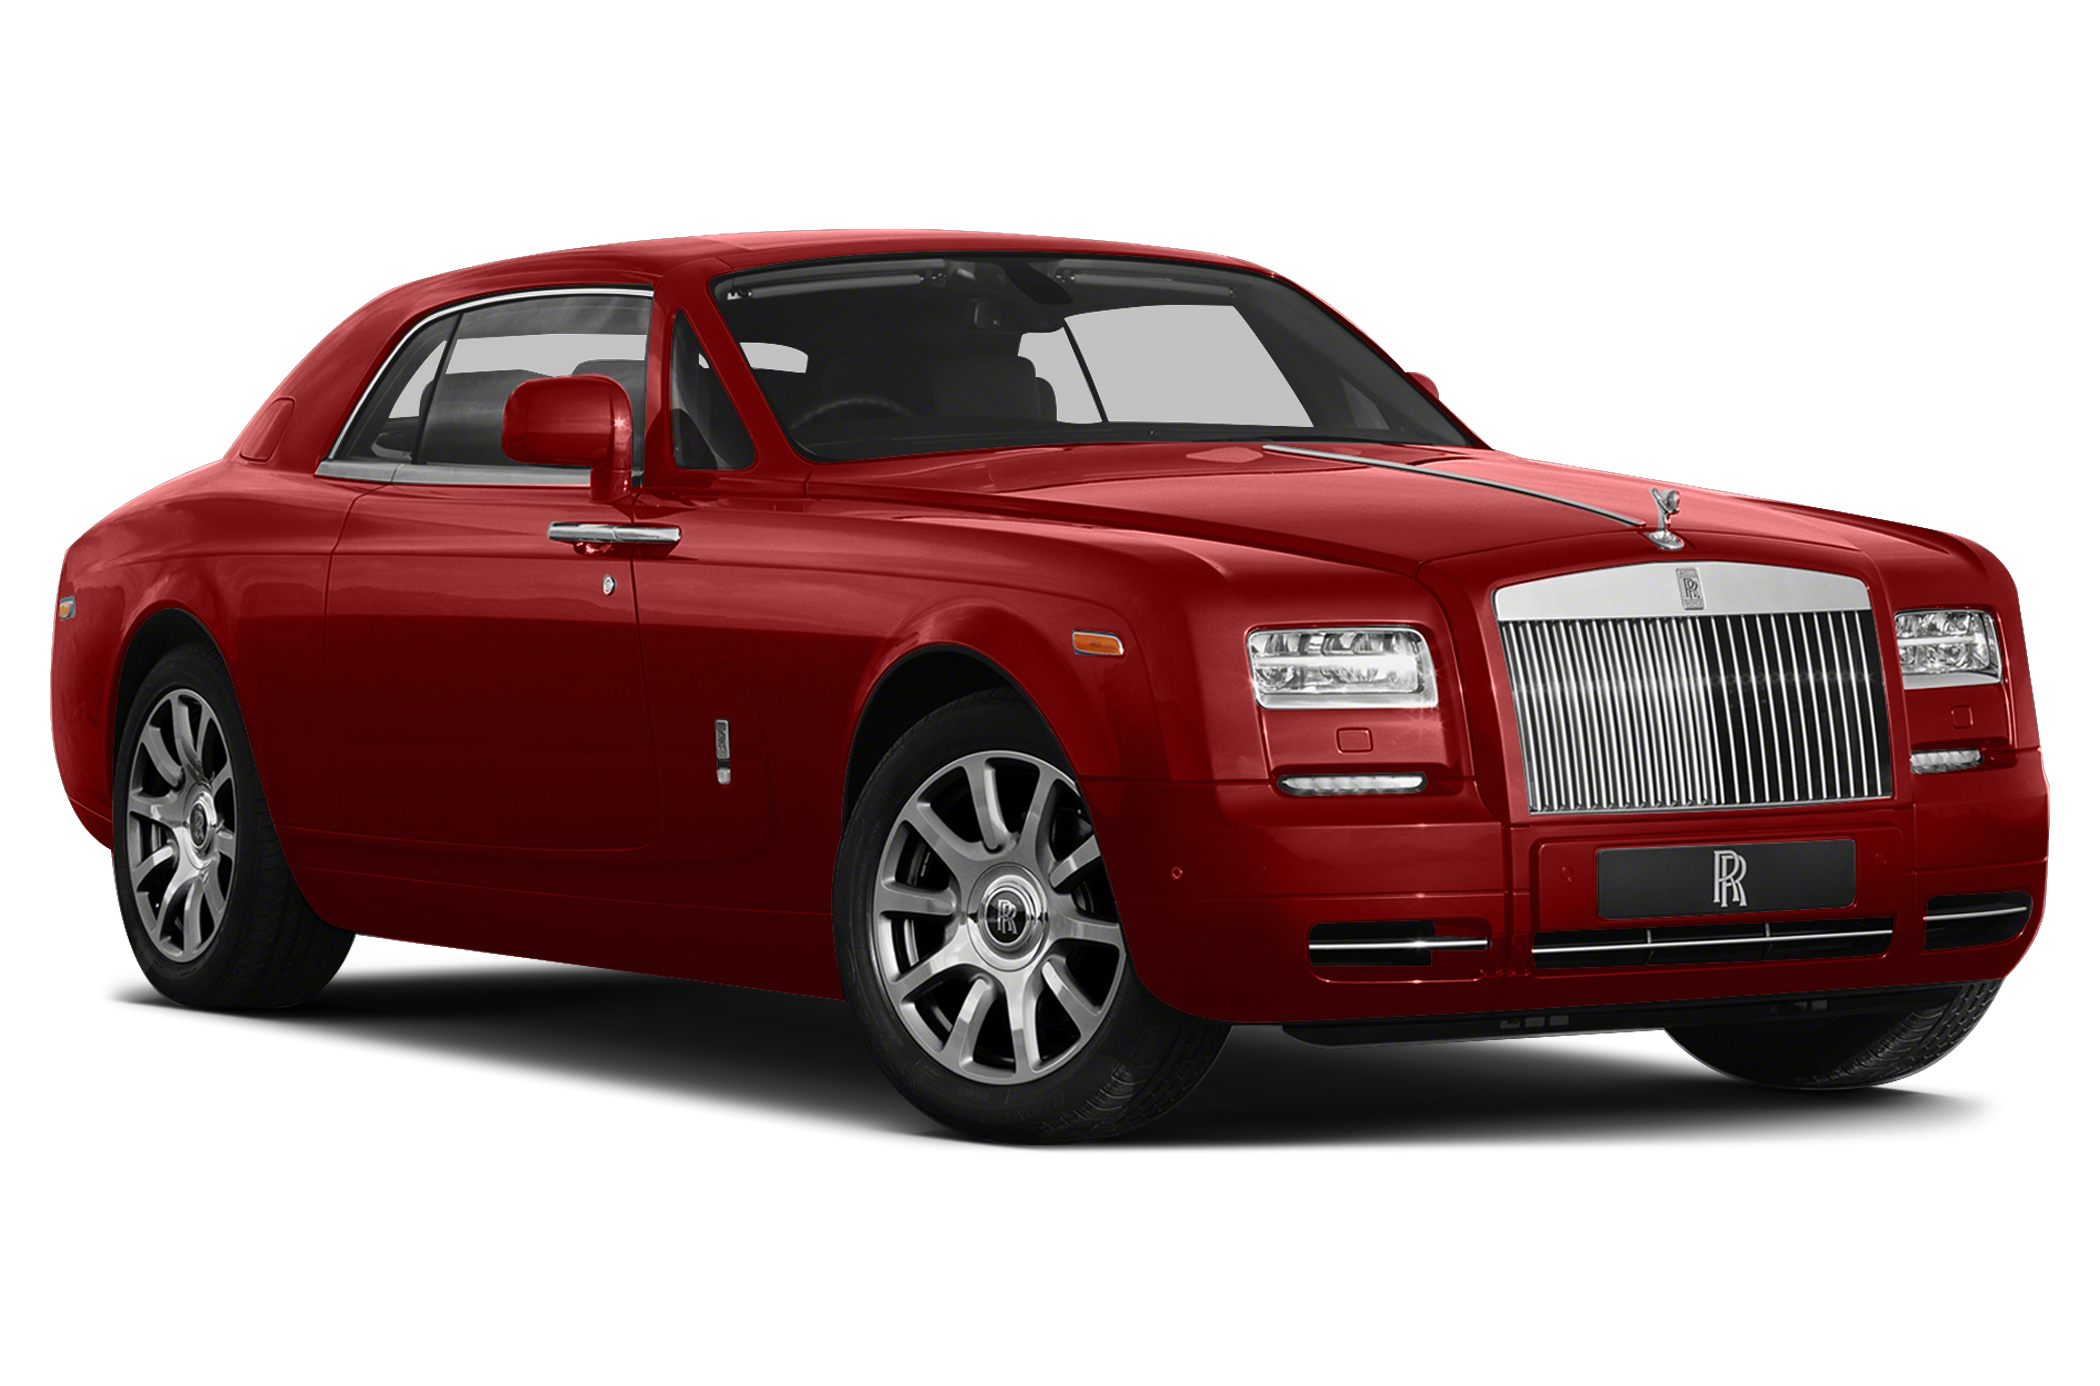 2015 Rolls-Royce Phantom Coupe